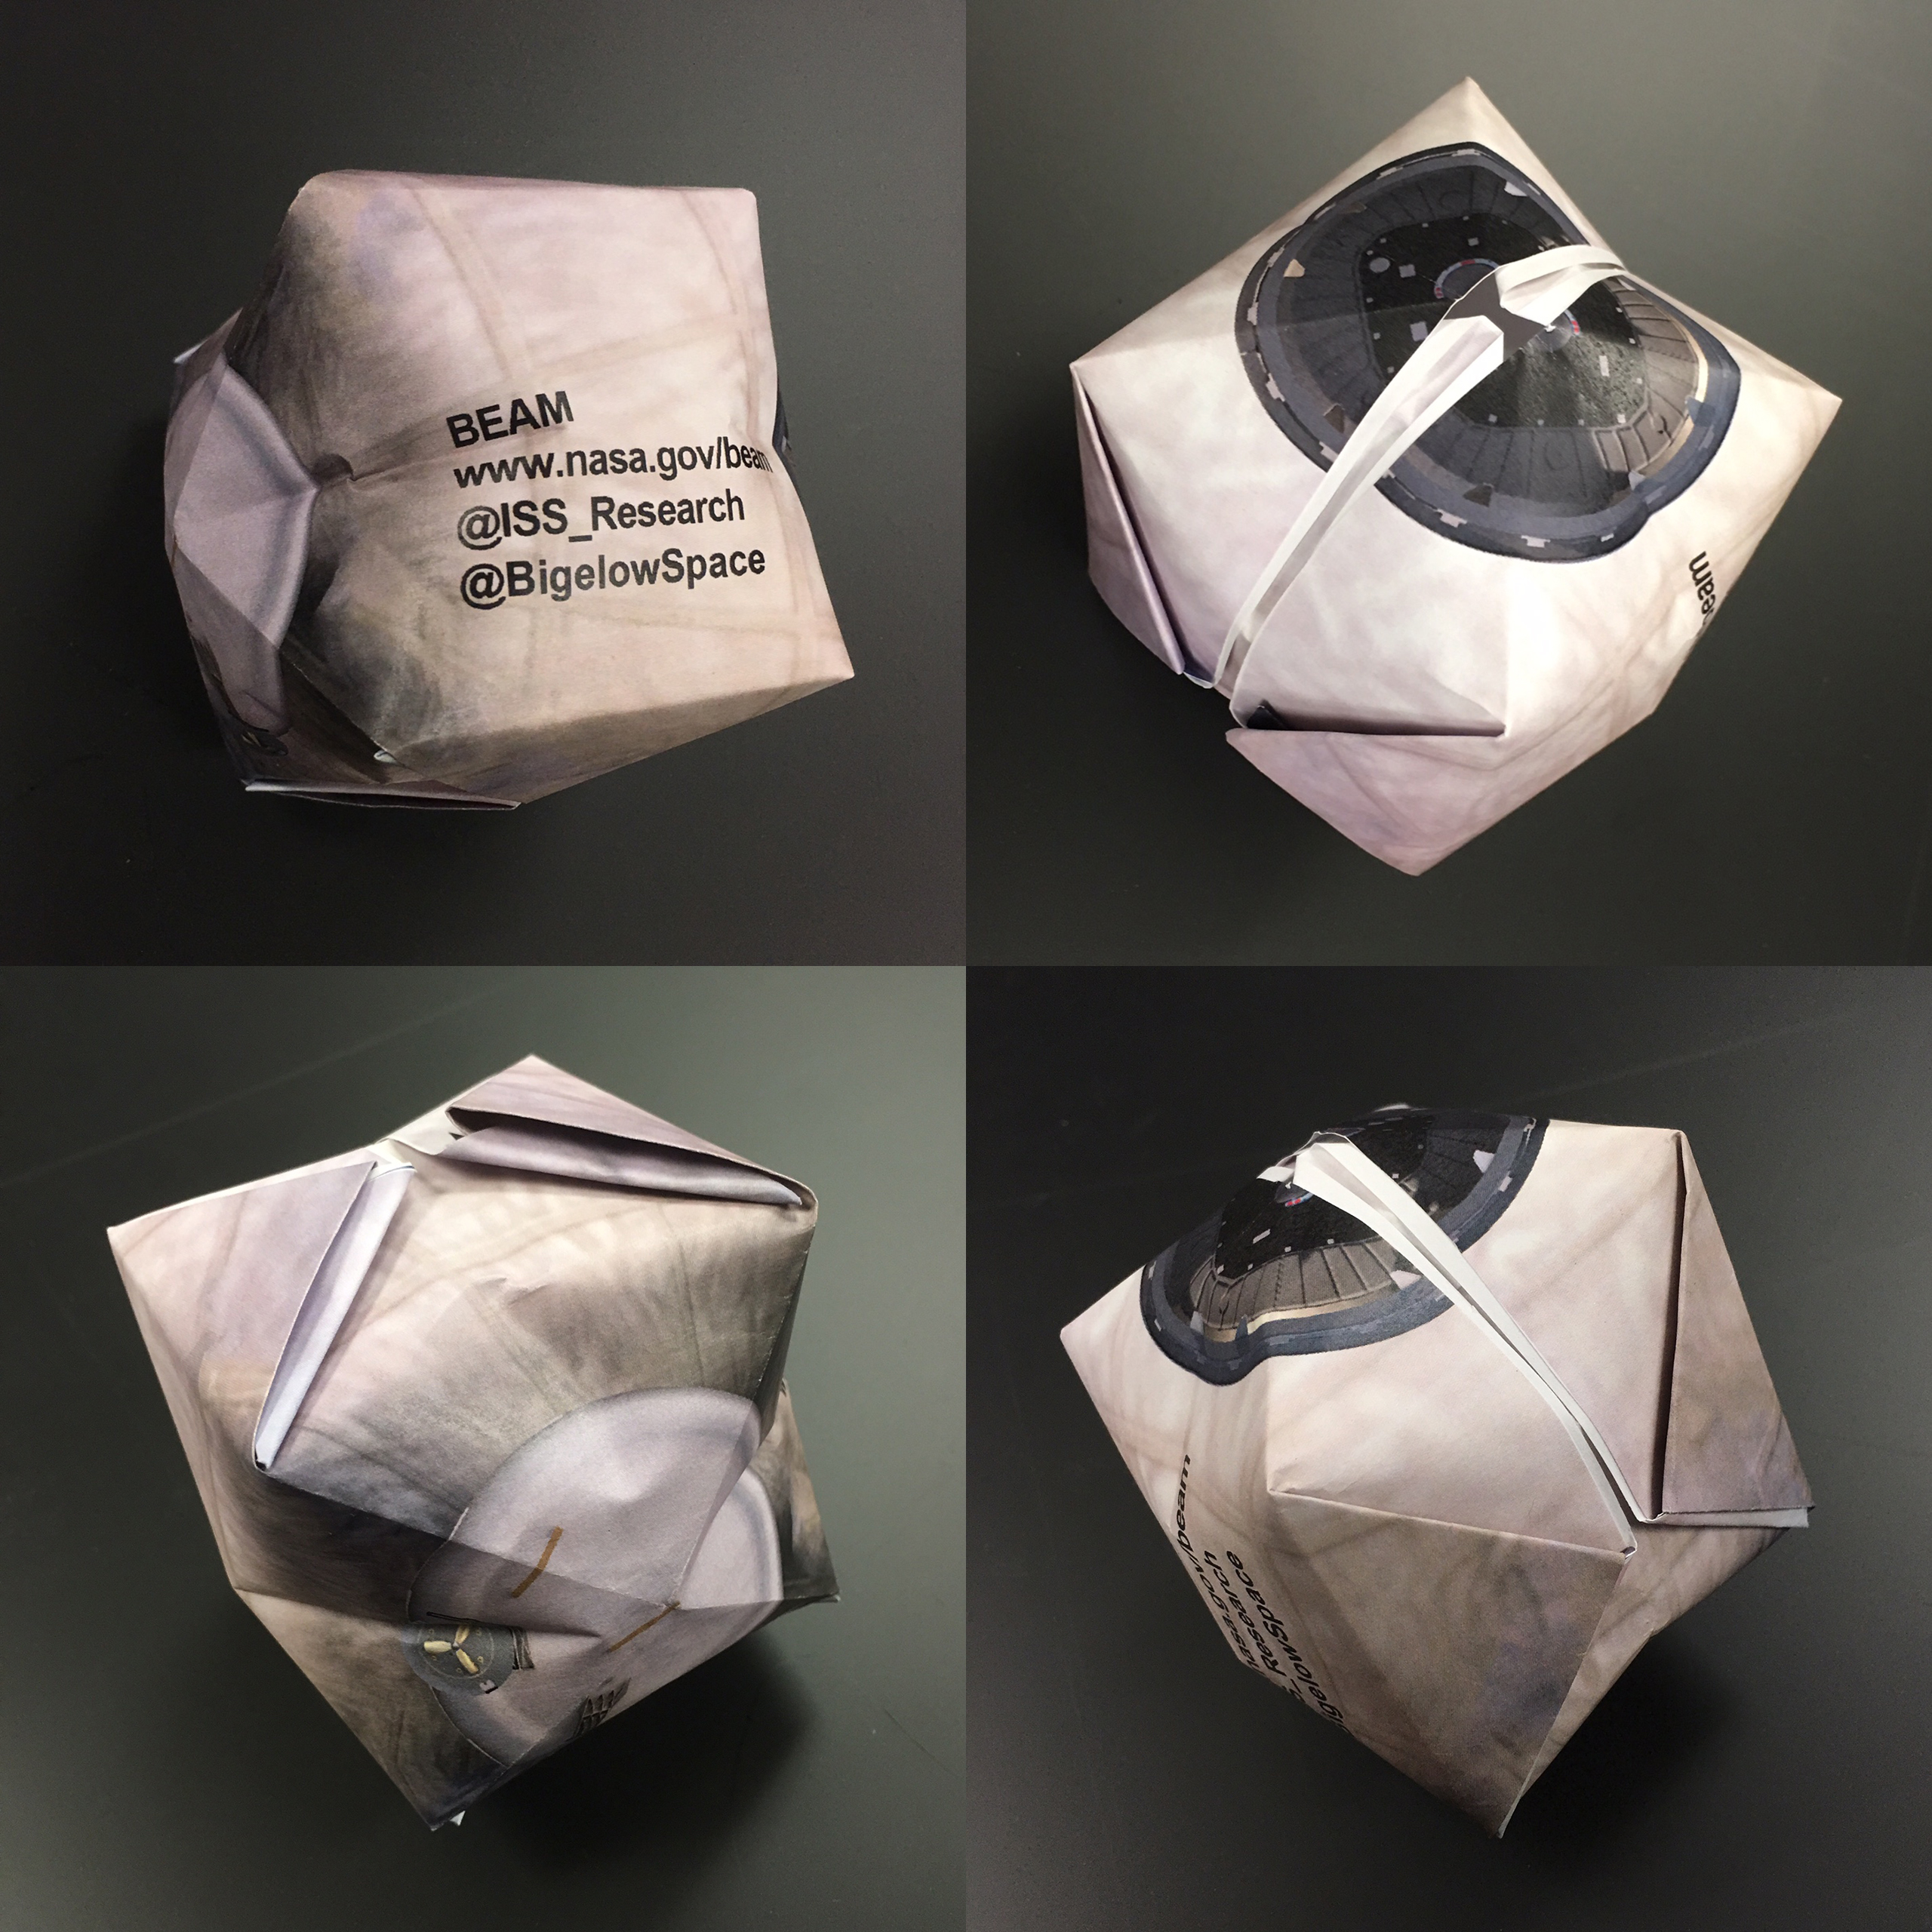 Fold and expand your own beam origami module nasa origabeami collage jeuxipadfo Choice Image